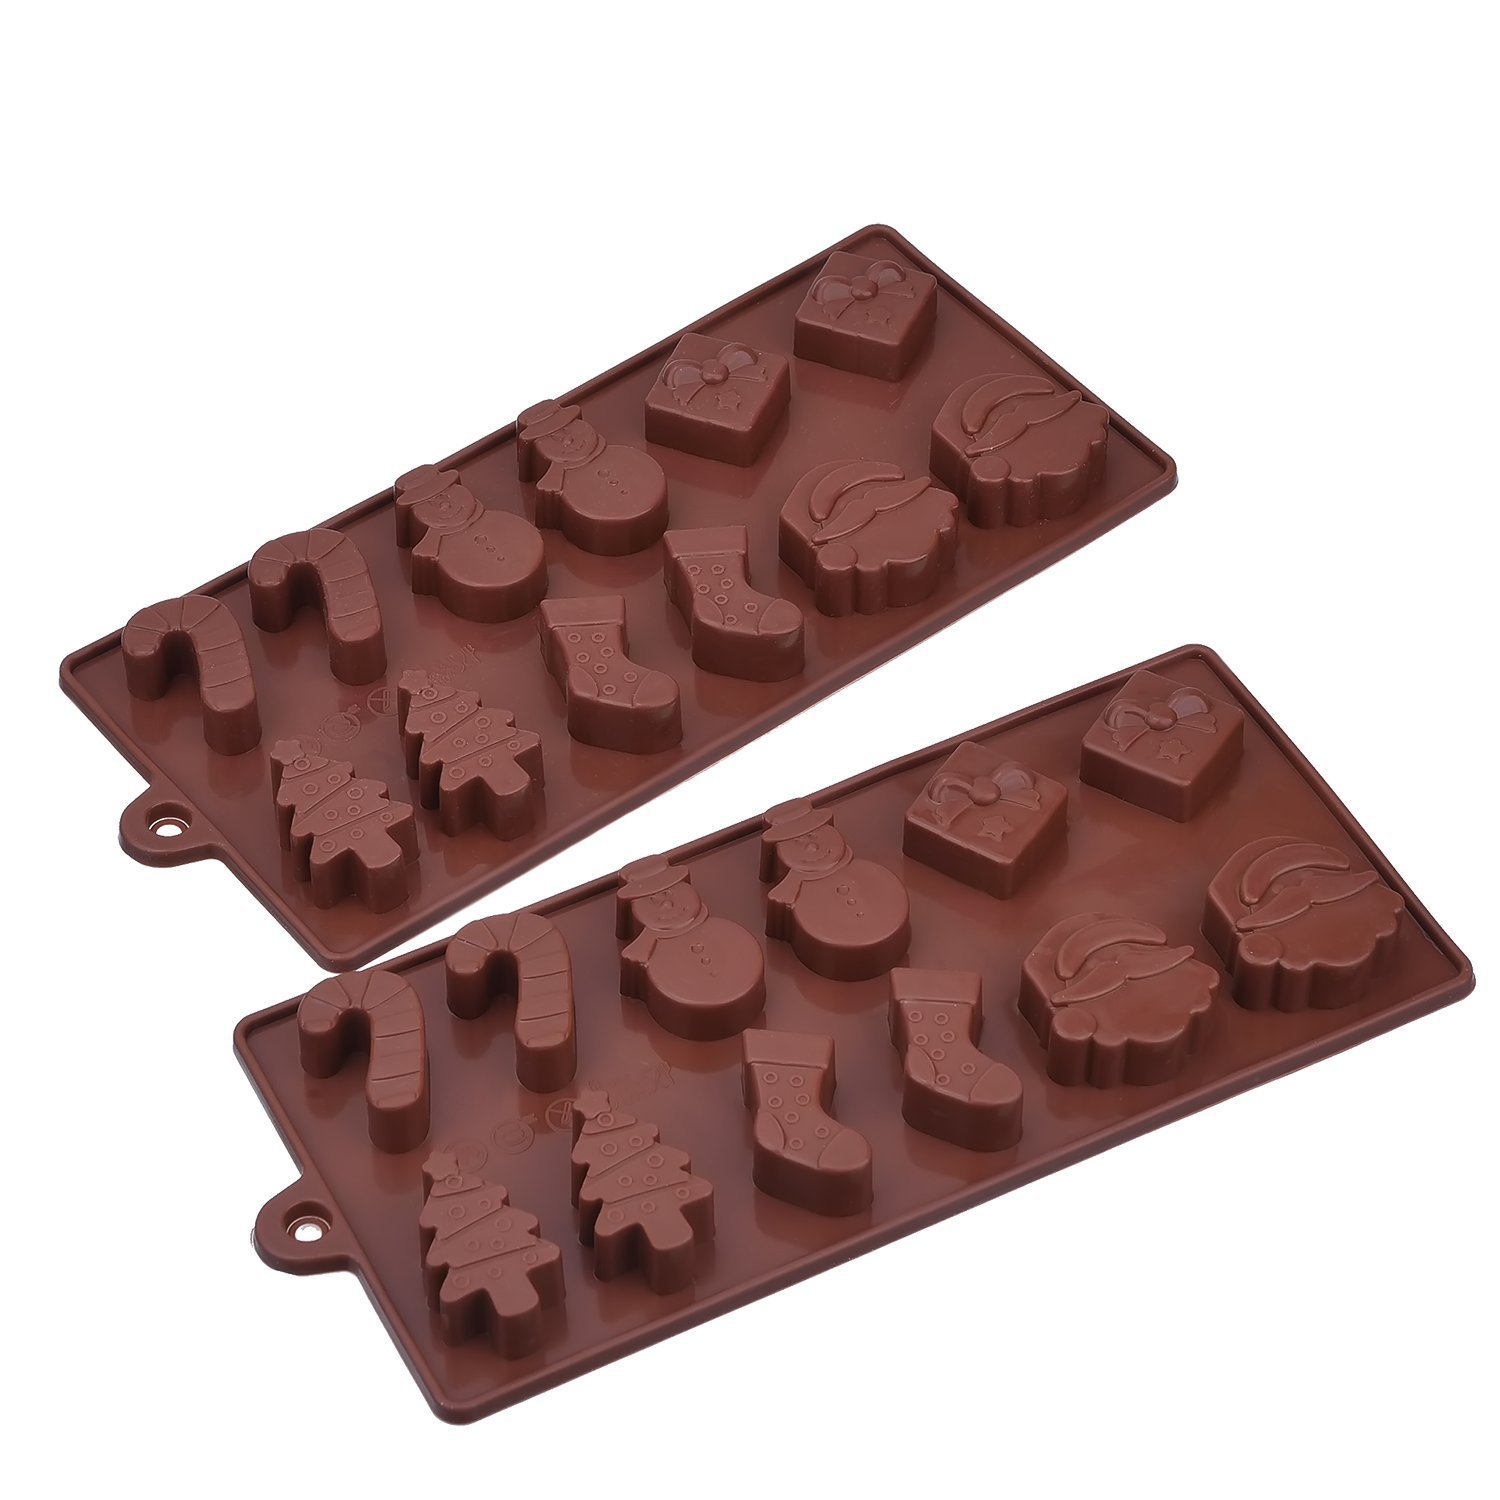 2 Pack Silicone Christmas Chocolate Molds, Cake Candy Jelly Ice Tray Mould, Coffee Mudder